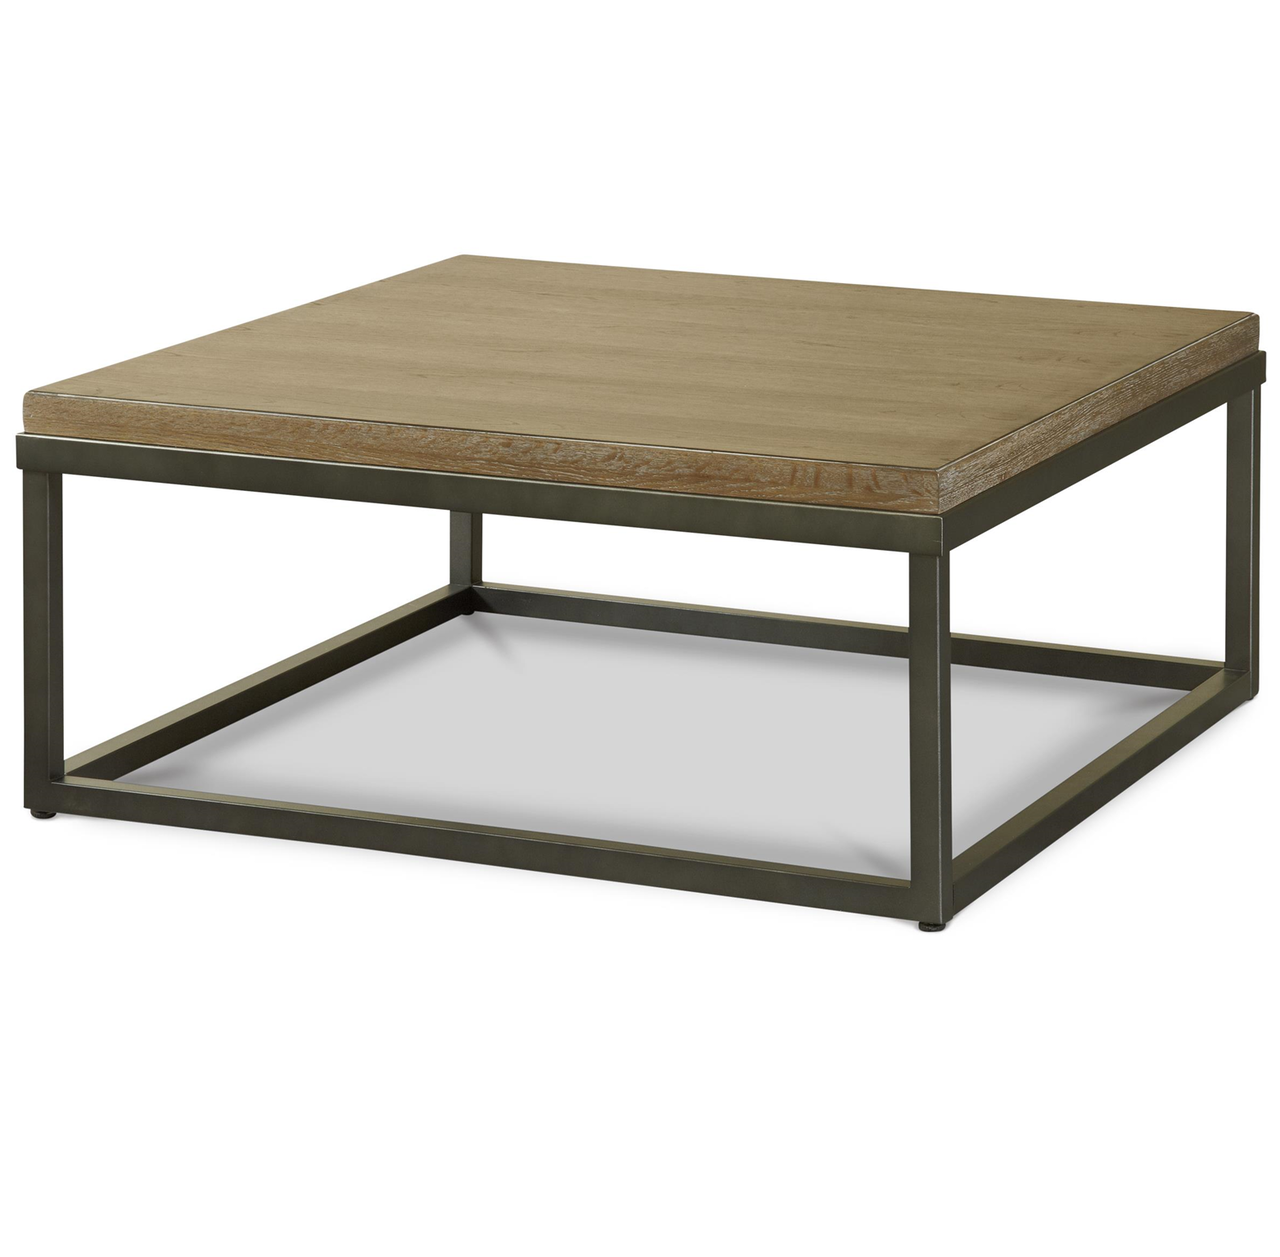 French Industrial Oak Wood + Metal Square Cocktail Table #frenchindustrial